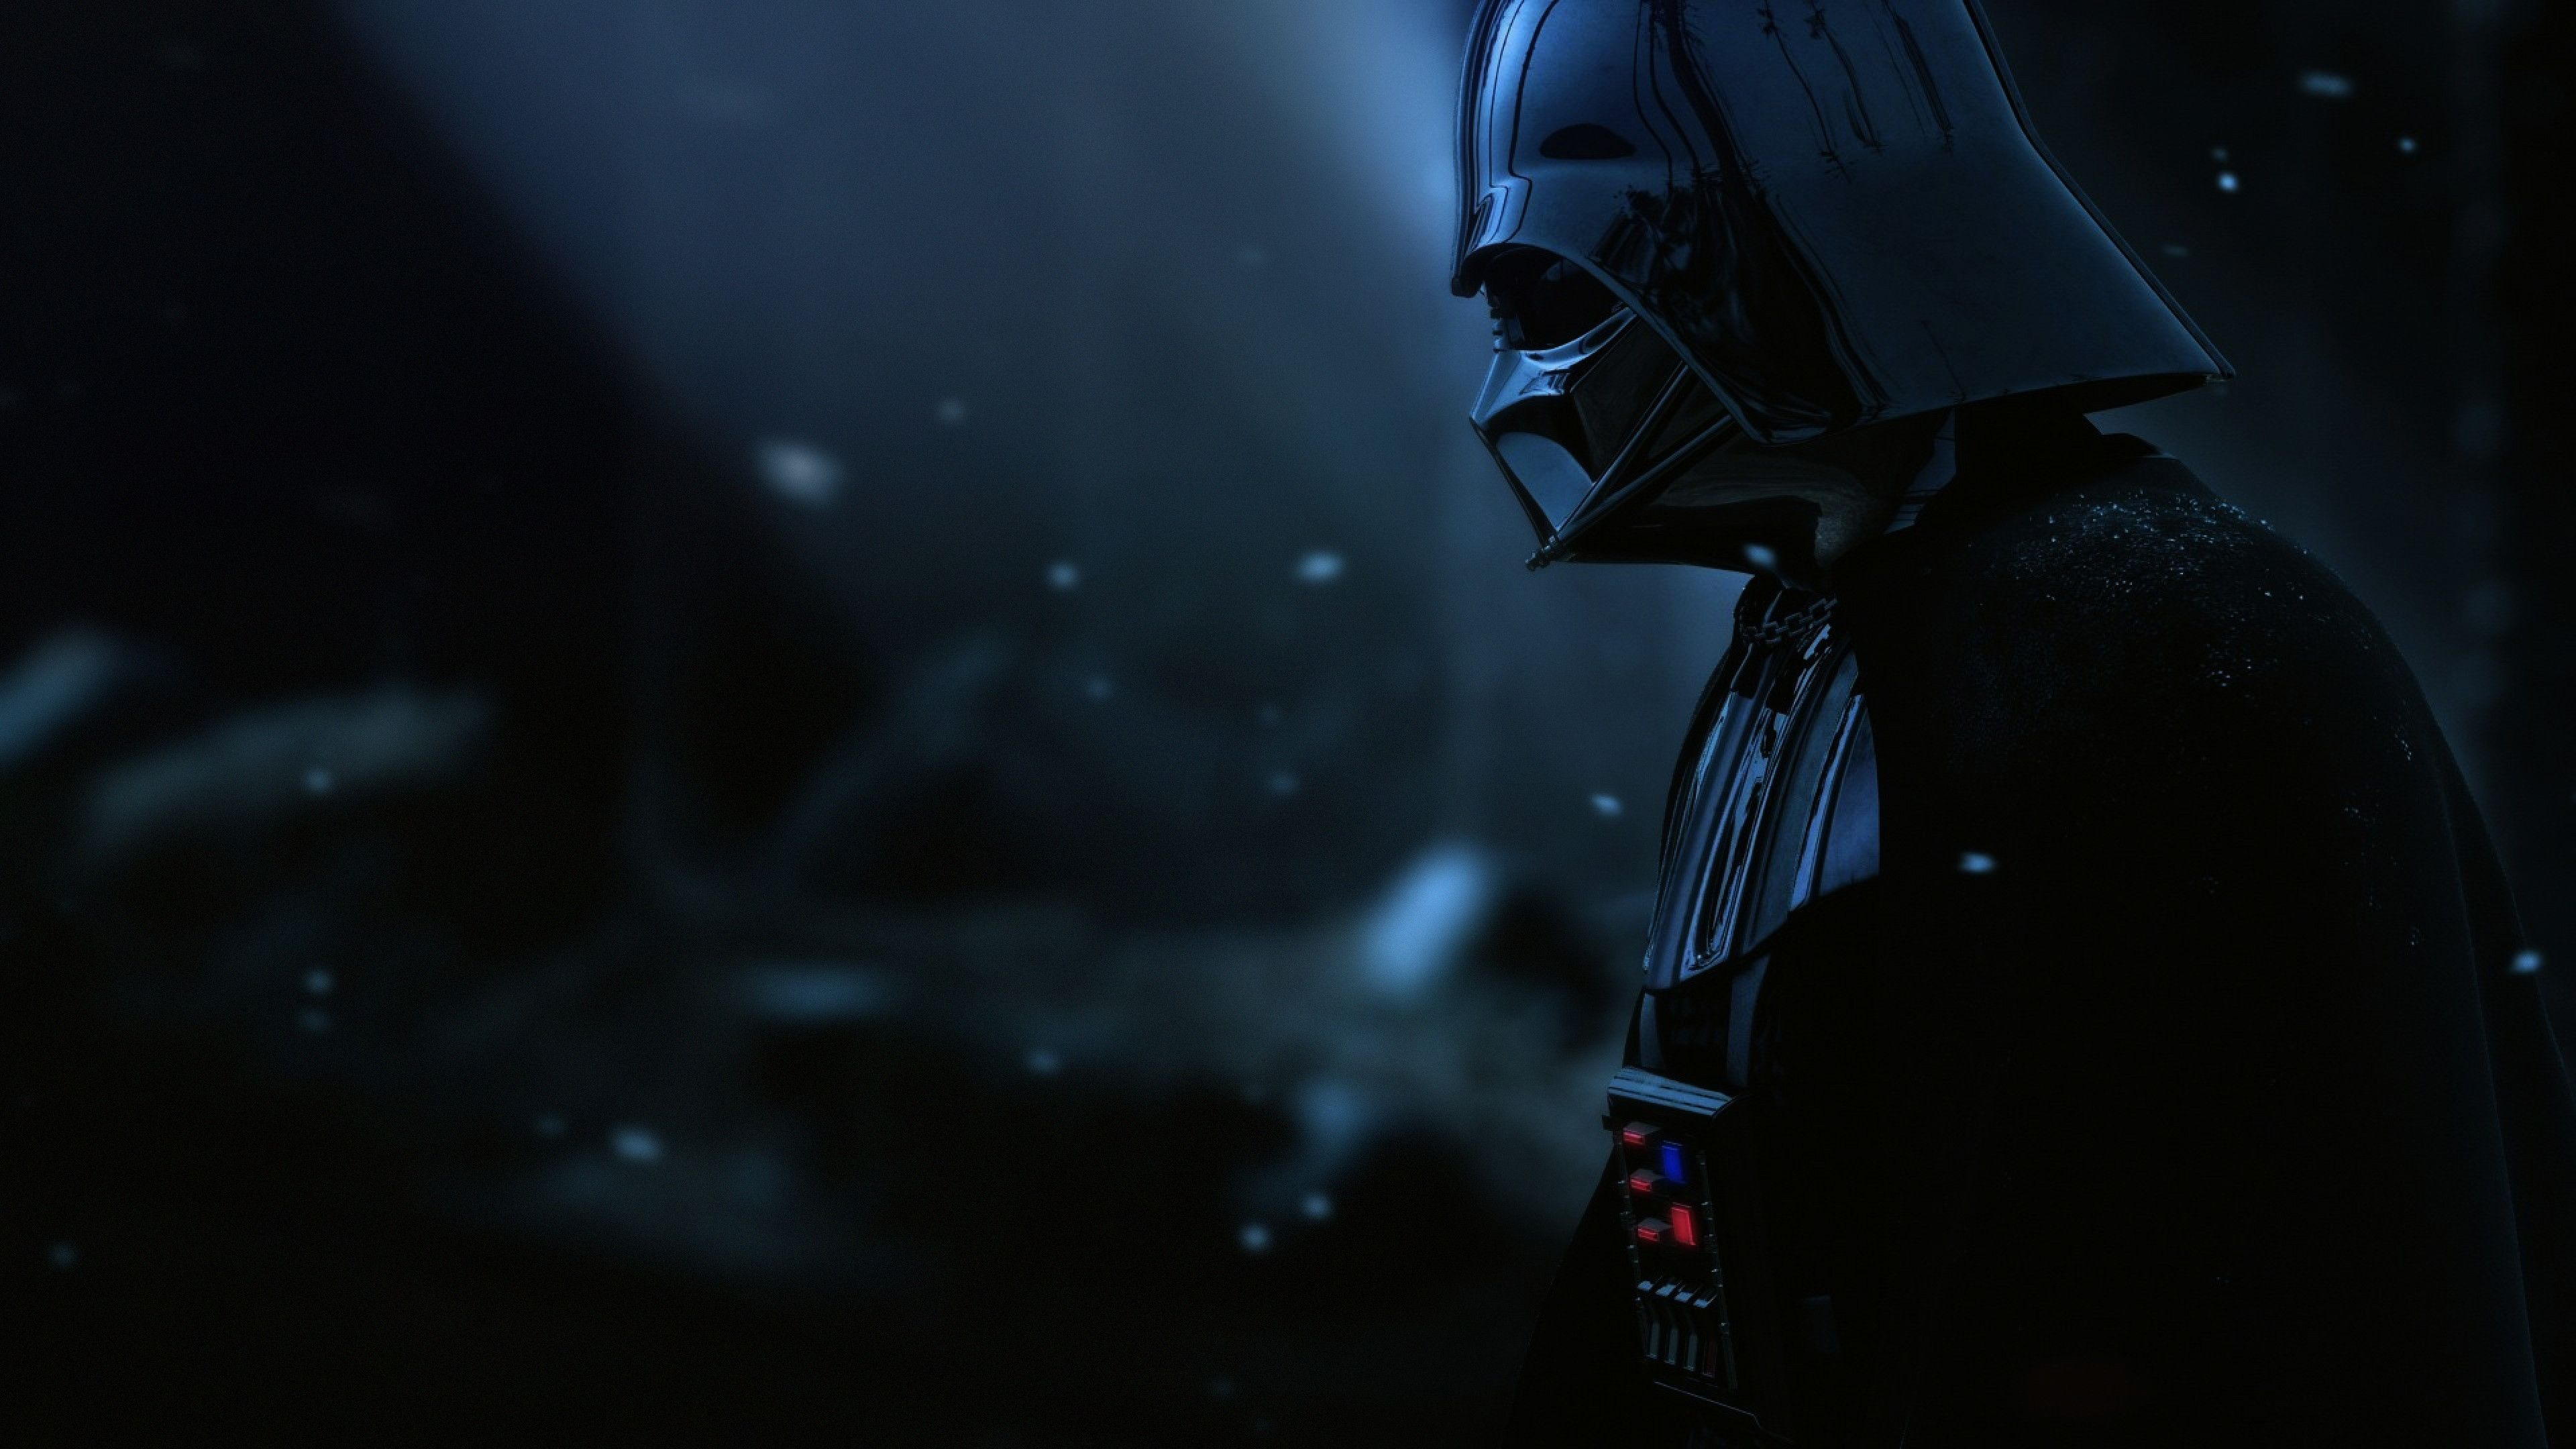 I Slightly Tweaked A 4k Wallpaper Of Darth Vader Darth Vader Wallpaper Star Wars Wallpaper Star Wars Background